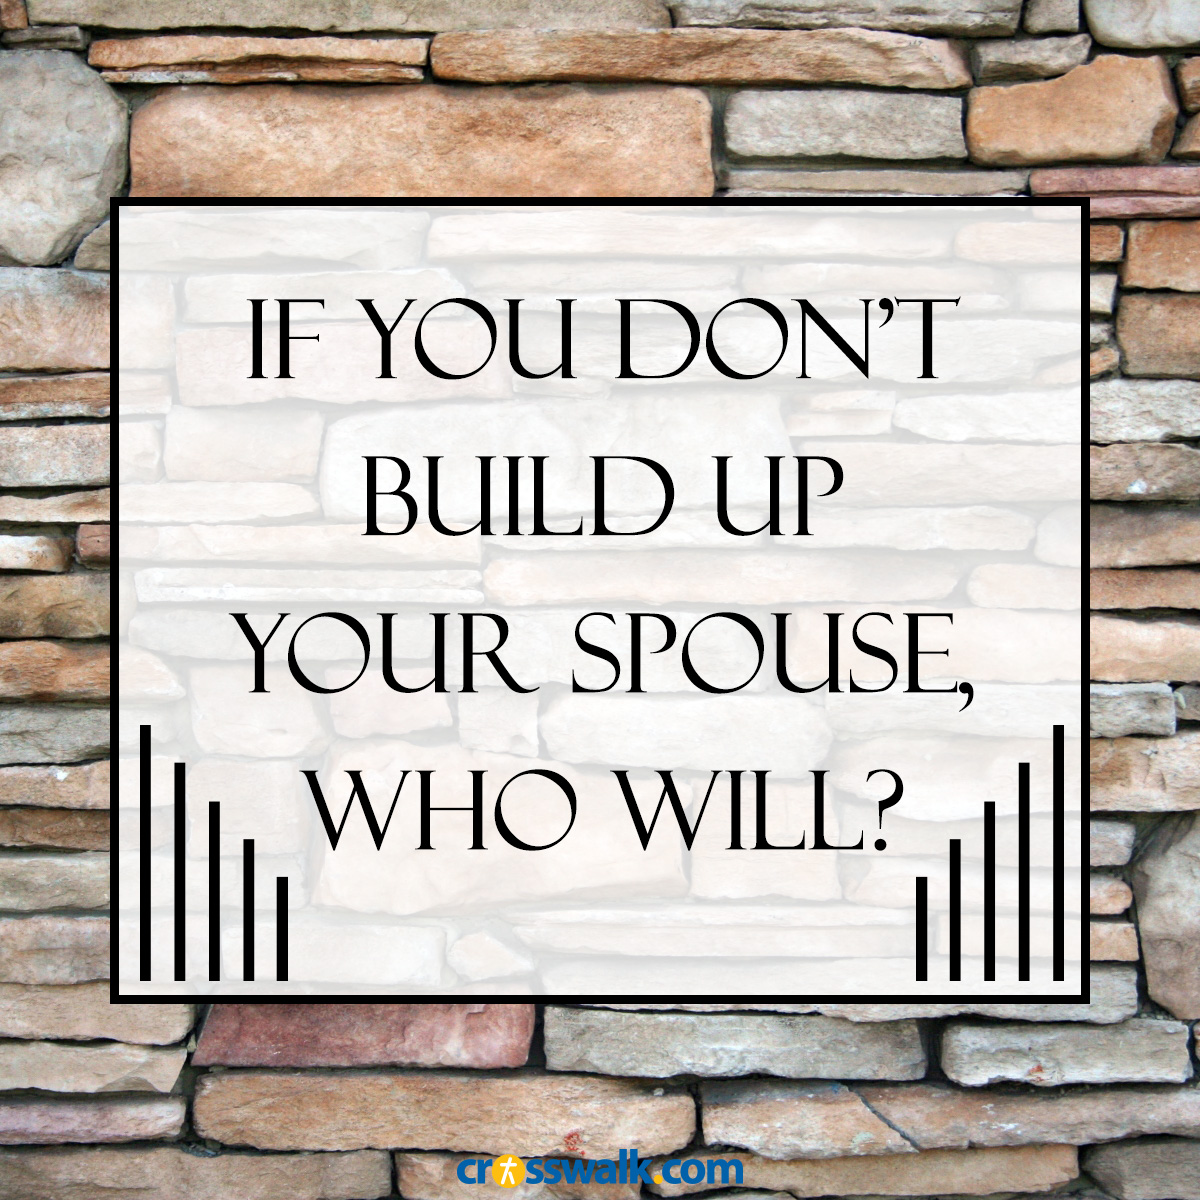 if you dont build up your spouse who will?